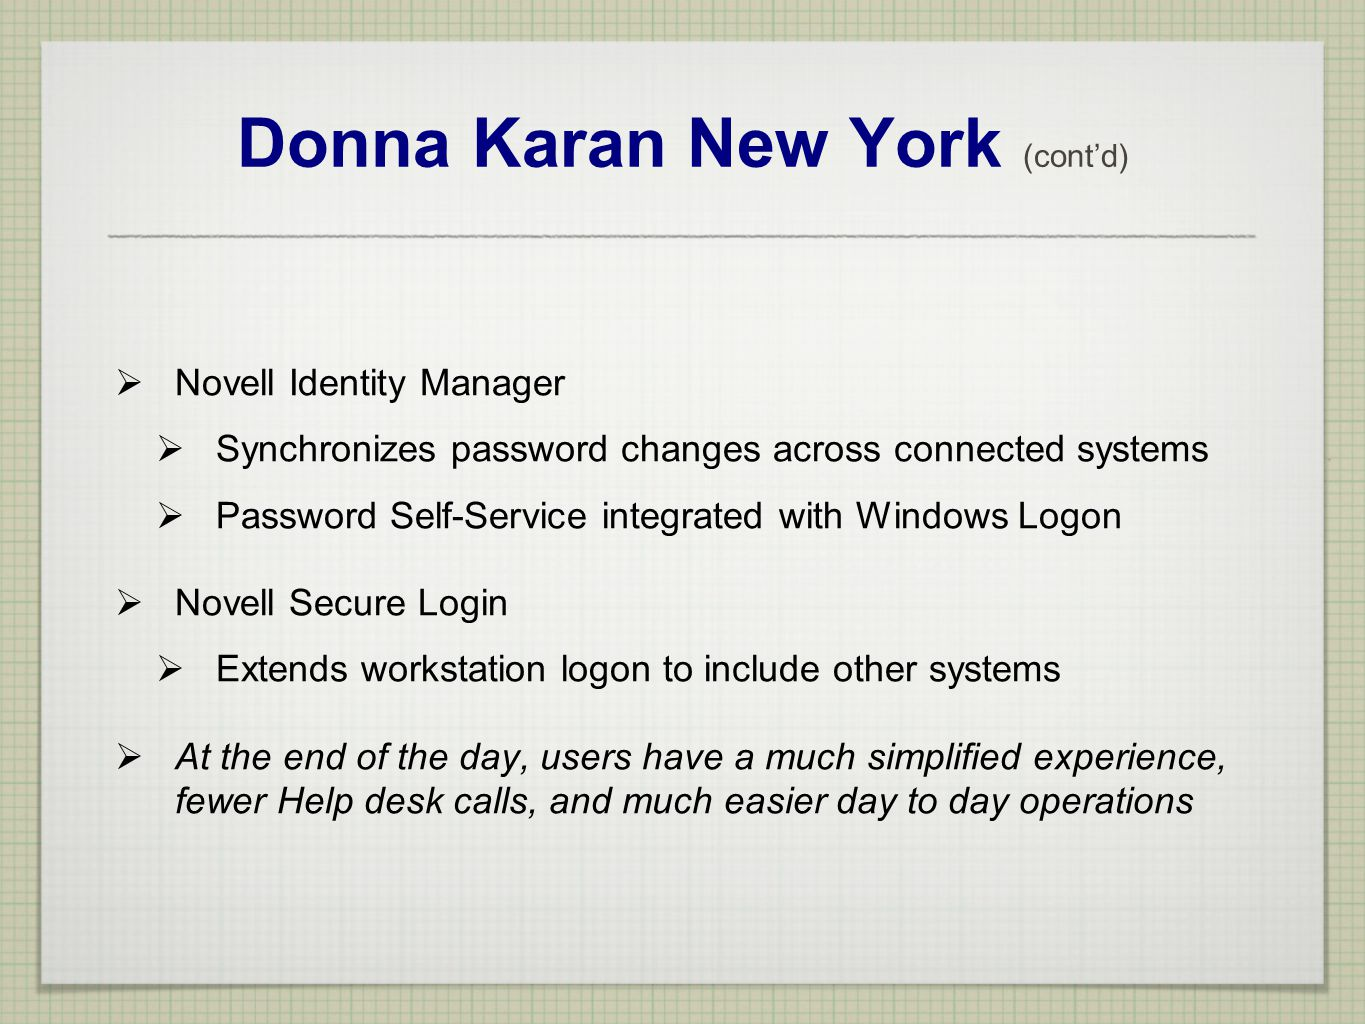 Donna Karan New York (contd) Novell Identity Manager Synchronizes password changes across connected systems Password Self-Service integrated with Wind